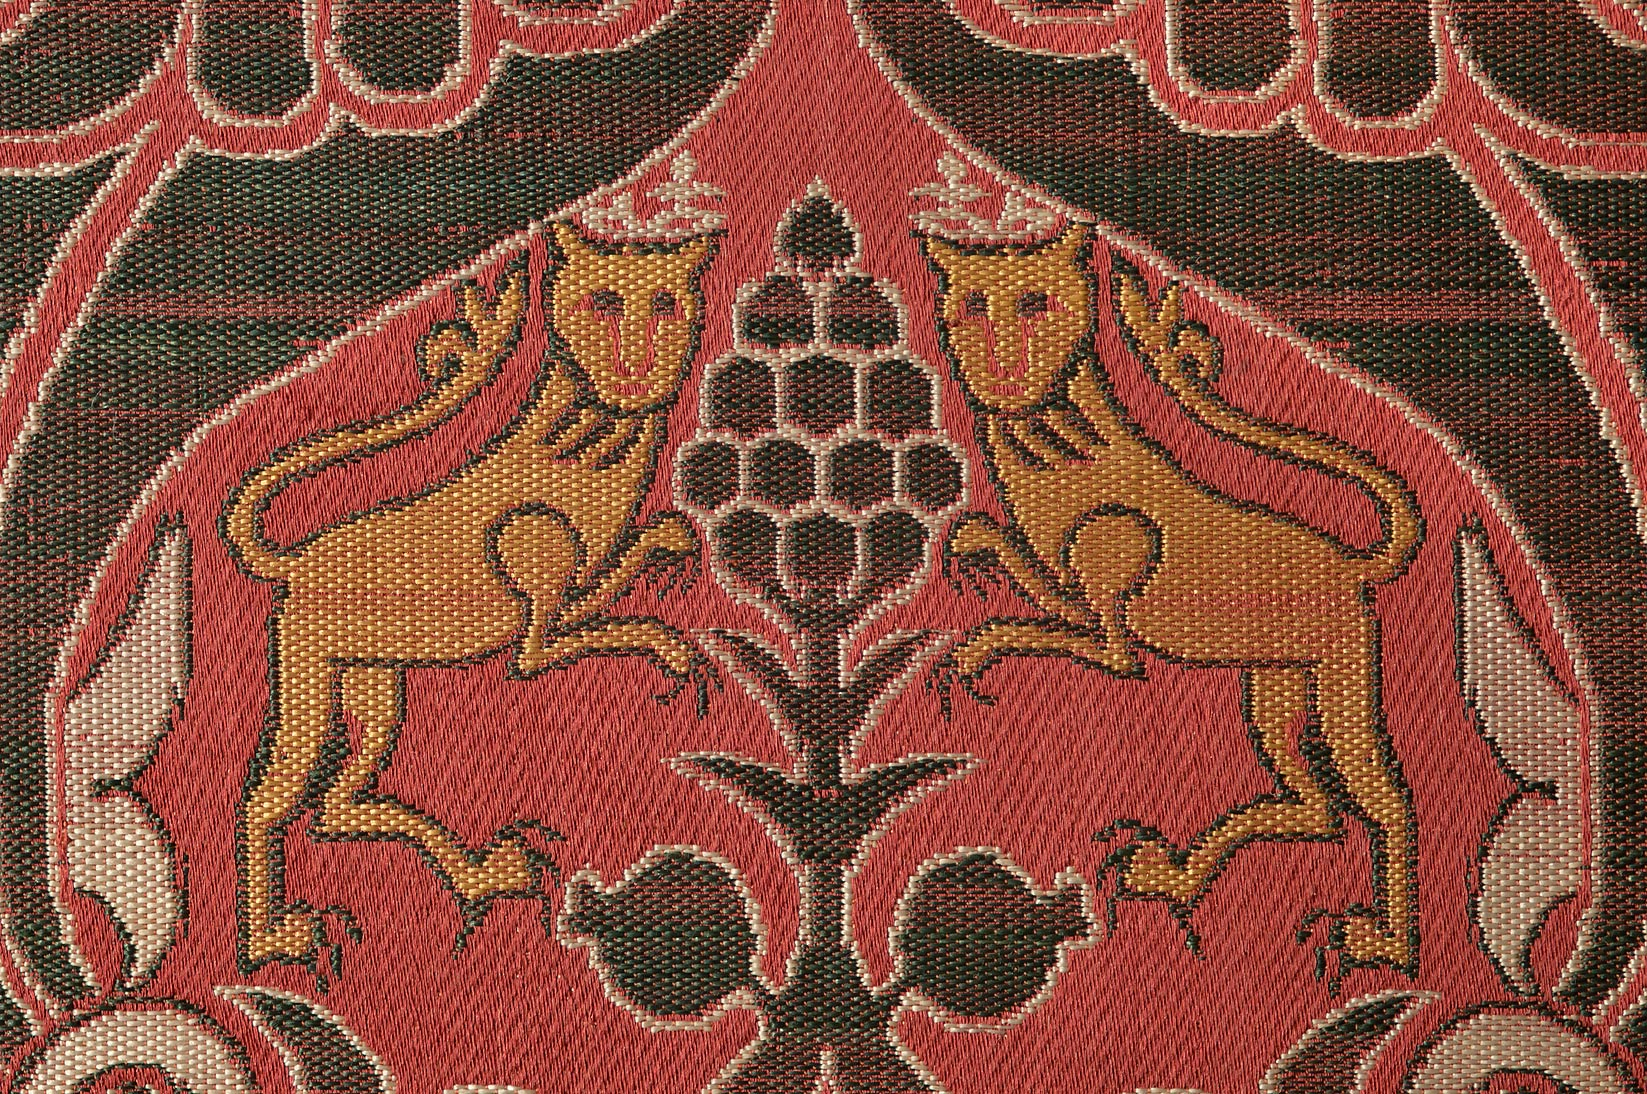 Detail of a carpet on display in Museum of Islamic Art. Doha, Qatar